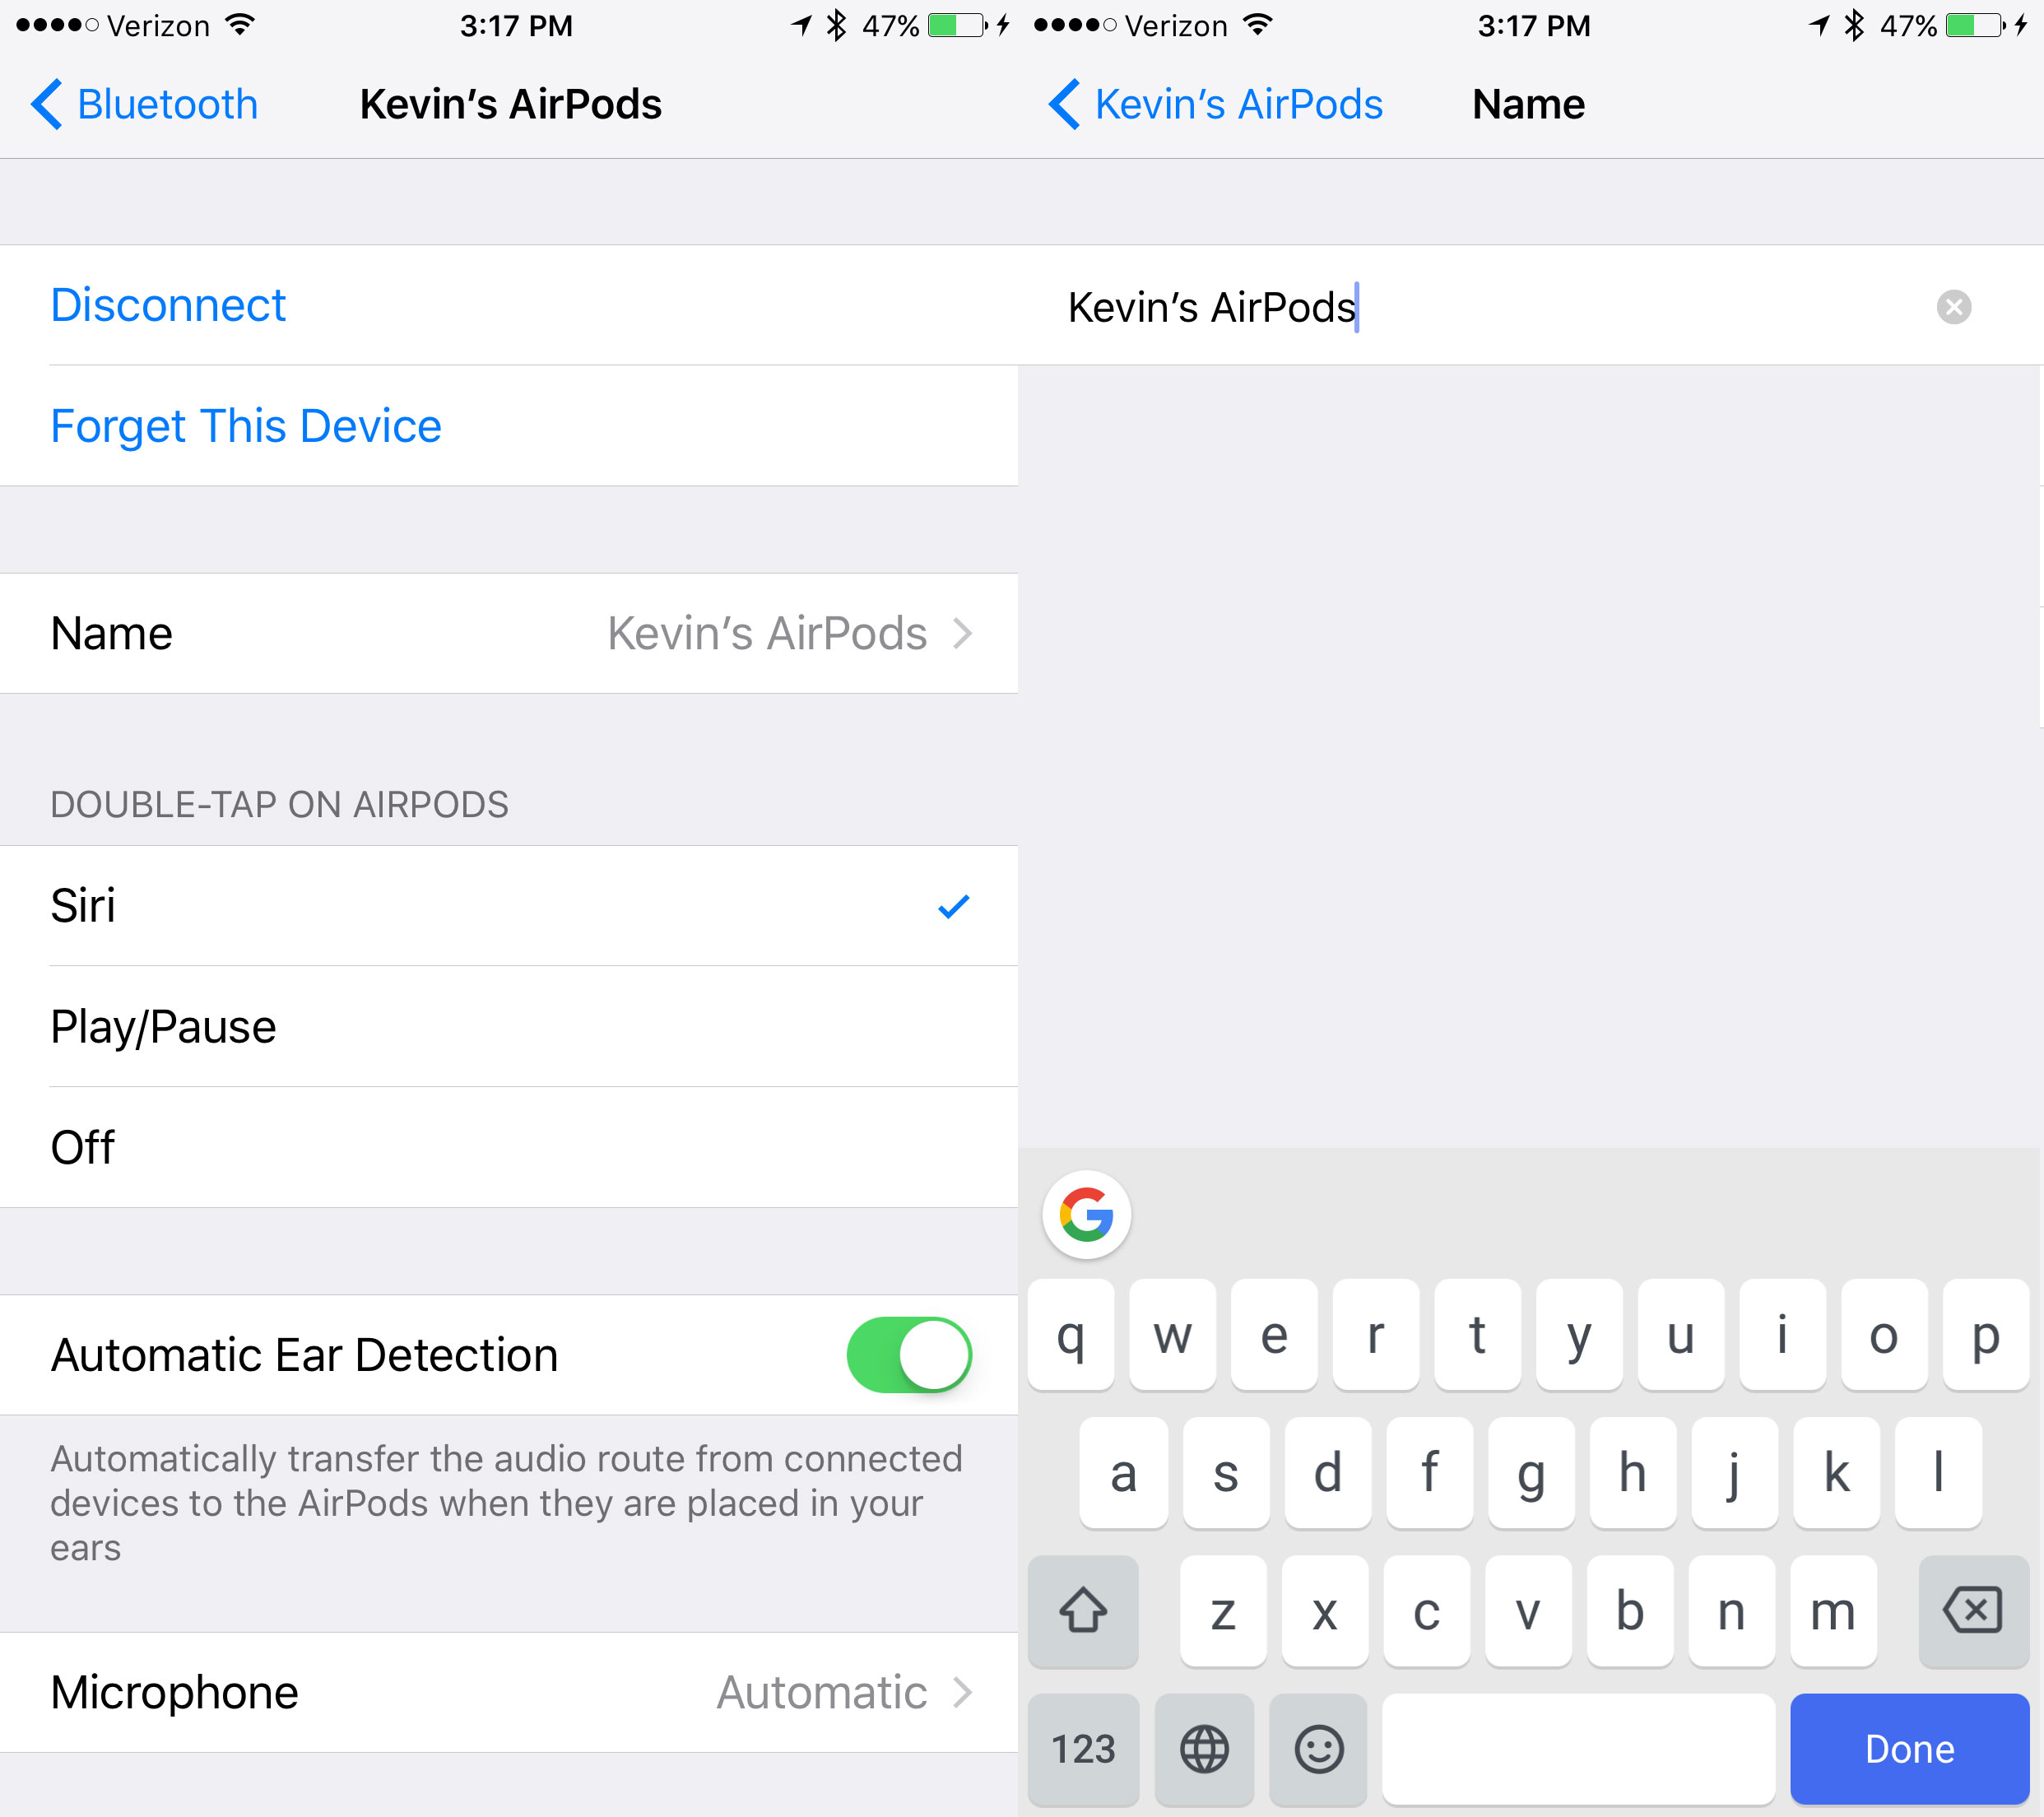 change-airpods-name-in-bluetooth-settings